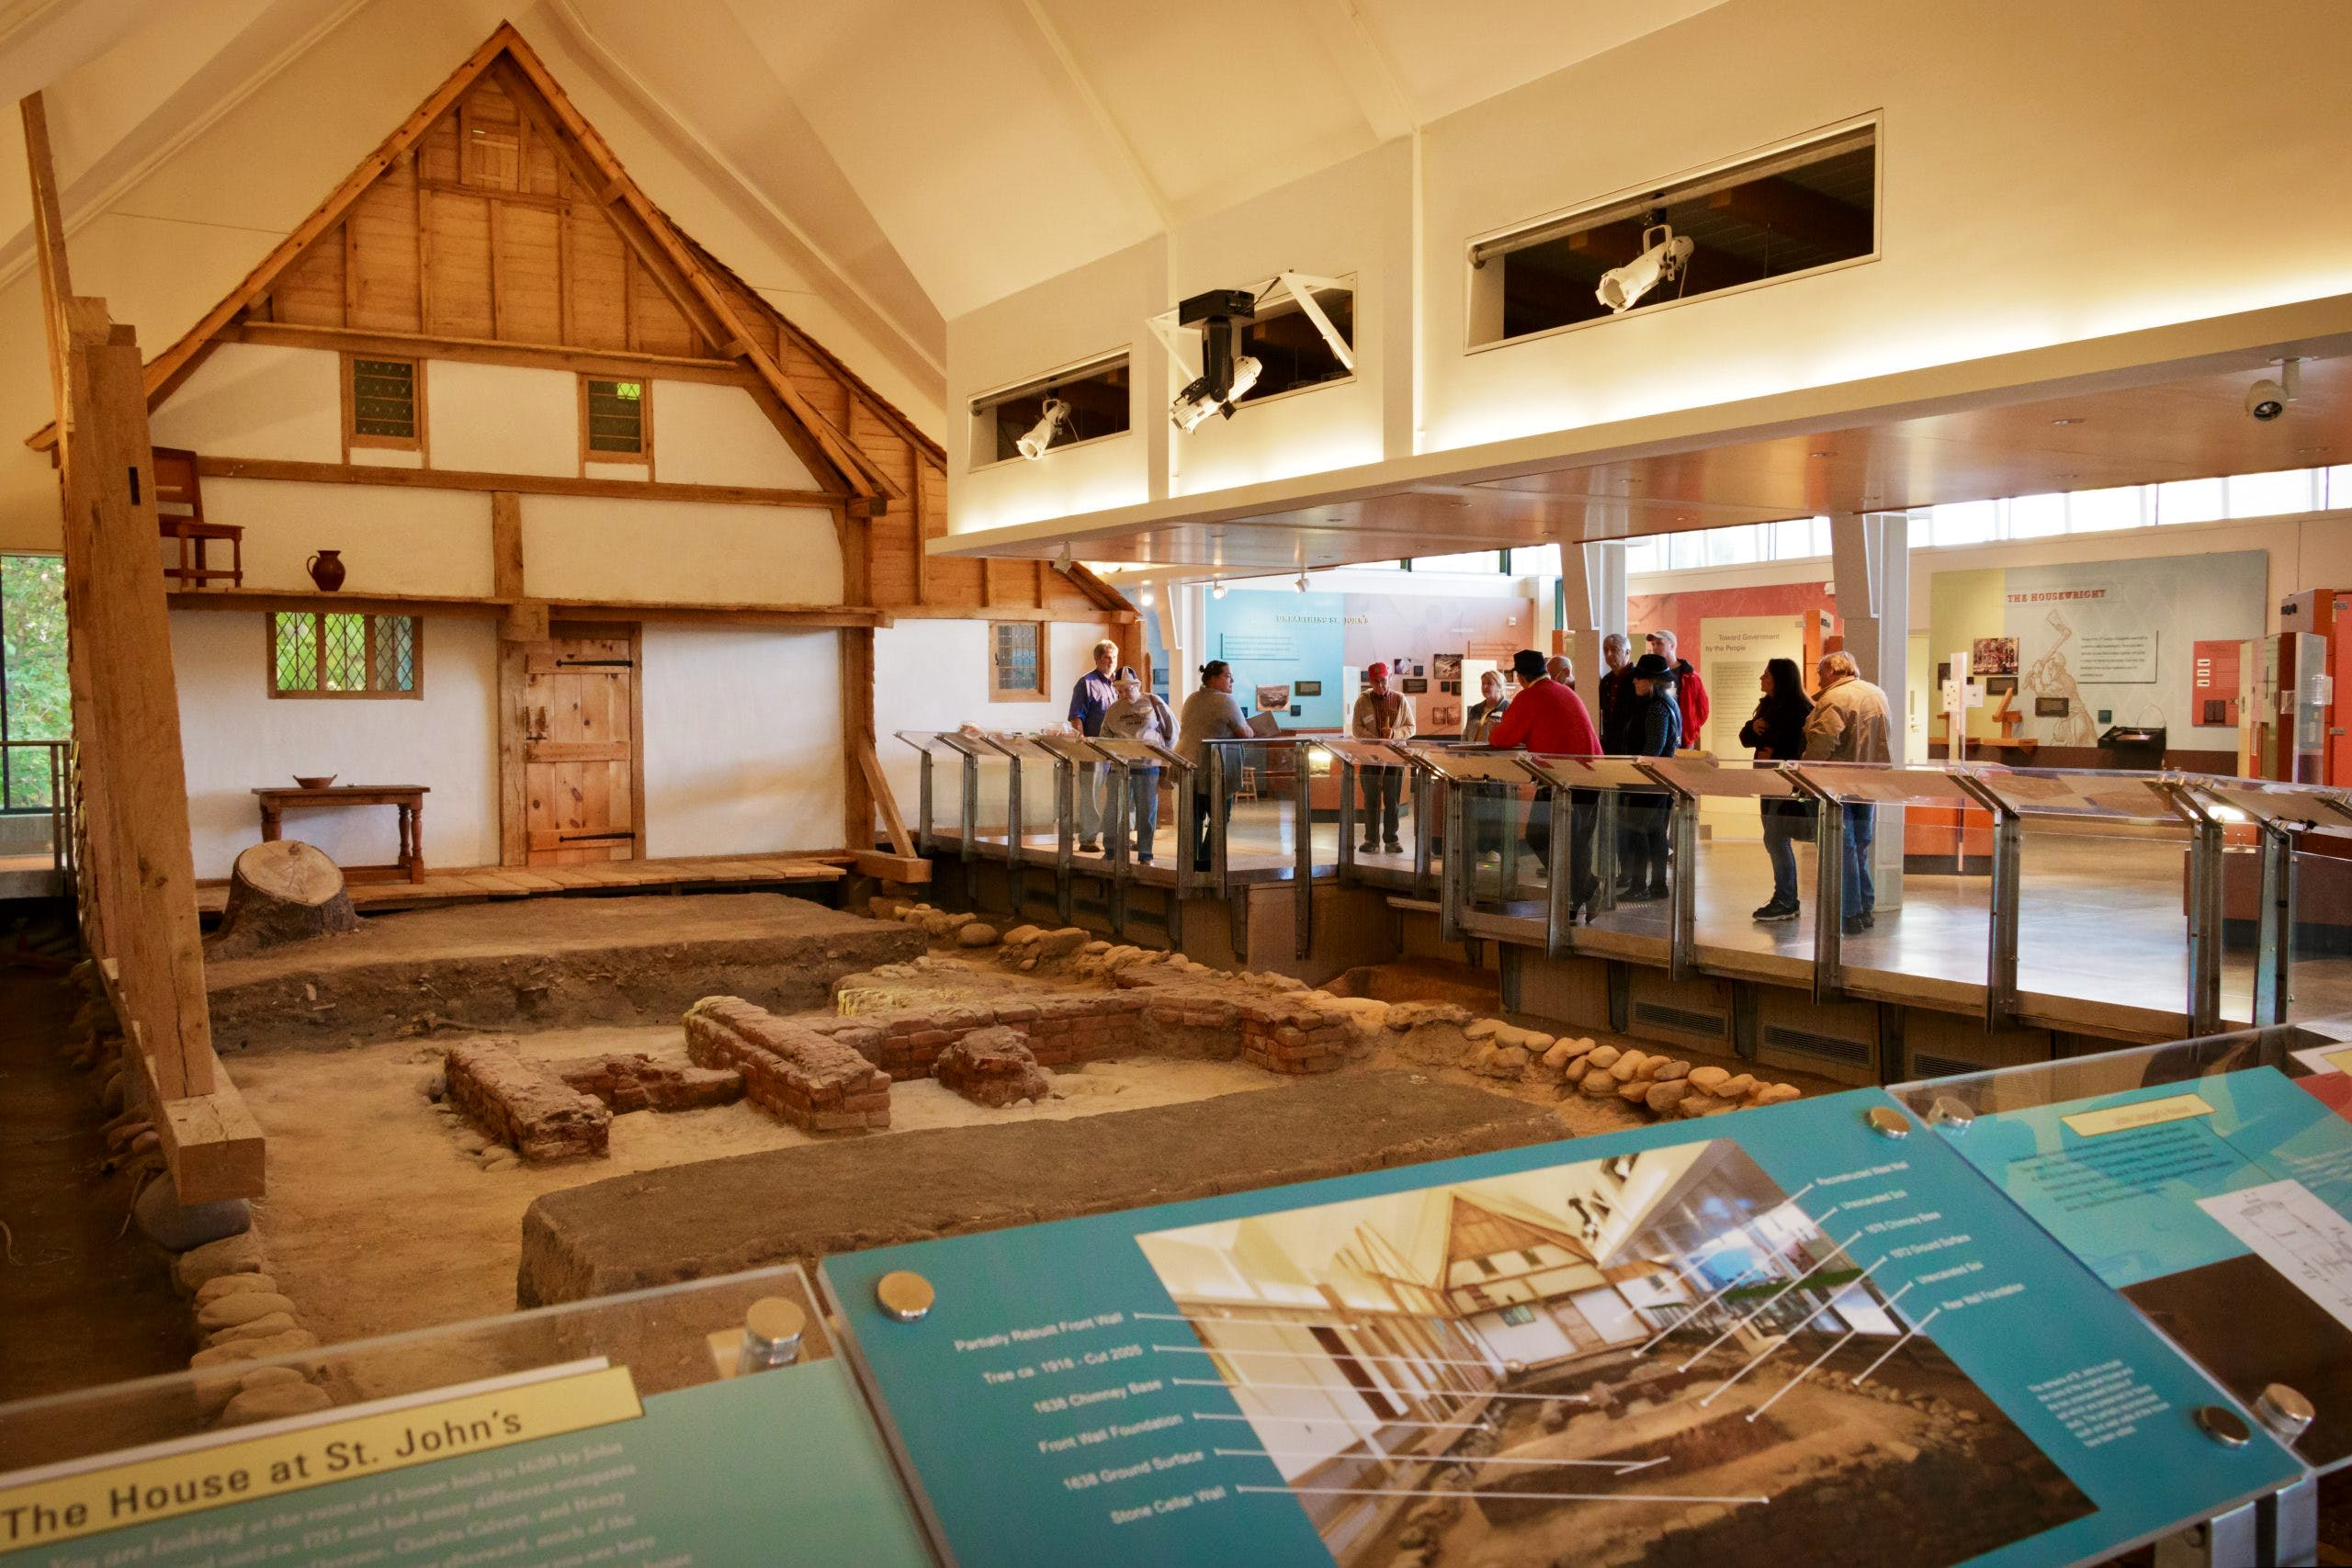 Interior view of the main exhibit at St. John's Site Museum